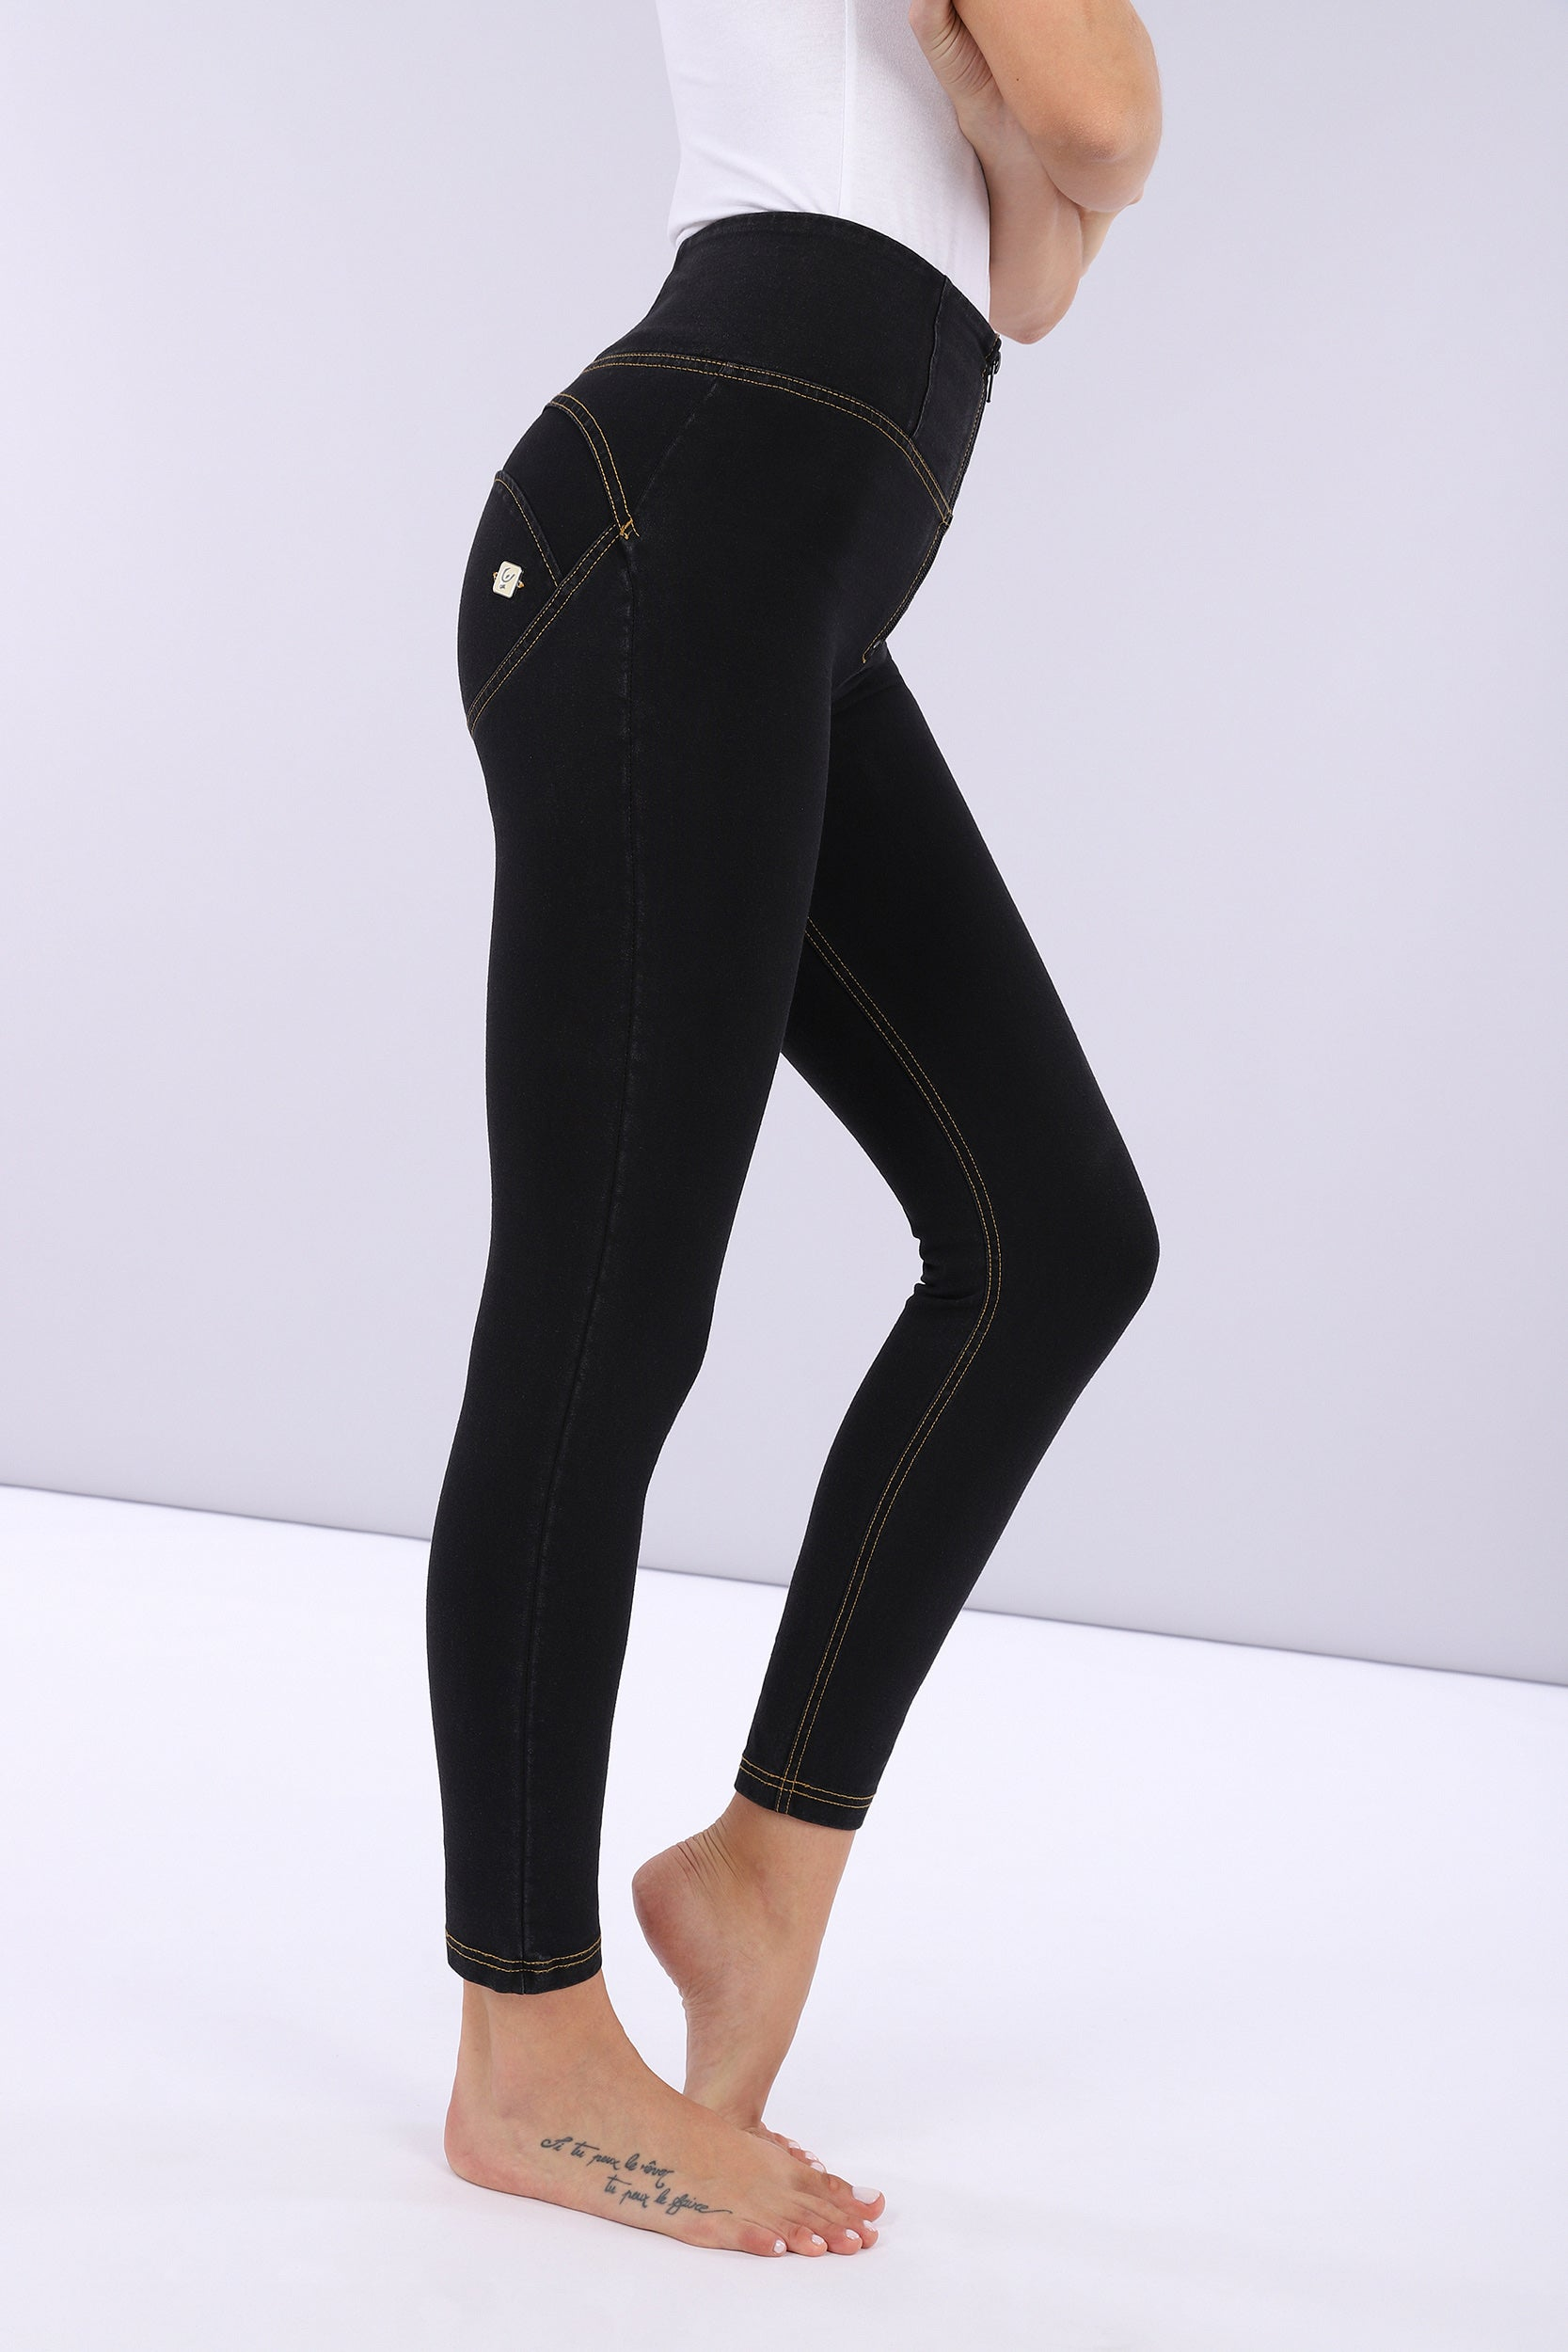 ANKLE LEG BLACK DENIM YELLOW STITCH HIGH WAIST SELF TONE ZIP